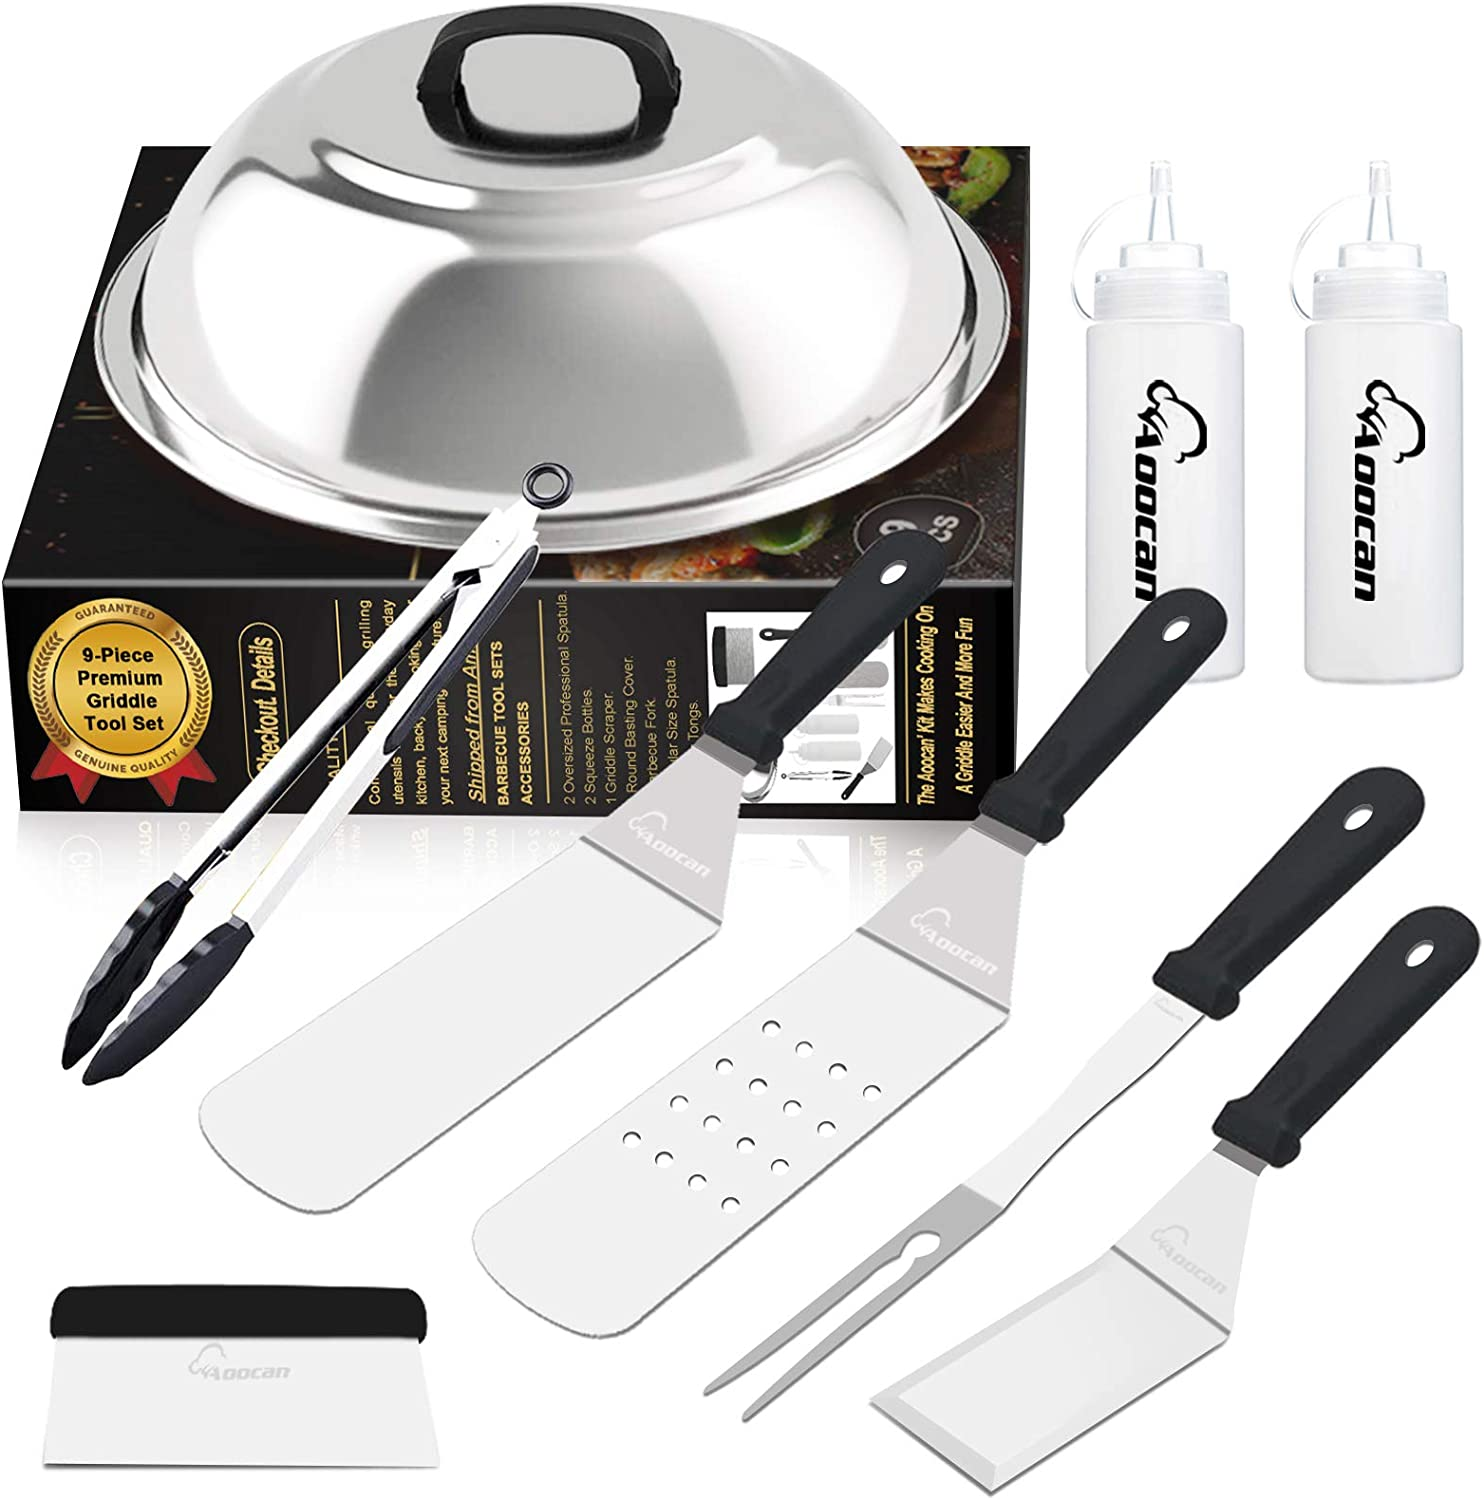 Aoocan Griddle Accessories Set, Flat Top Griddle Accessories, Grill Griddle Tools Cooking Kit with Heavy Duty Stainless Steel Scraper Spatula- Great for Flat top Cooking, Camping, Outdoor BBQ